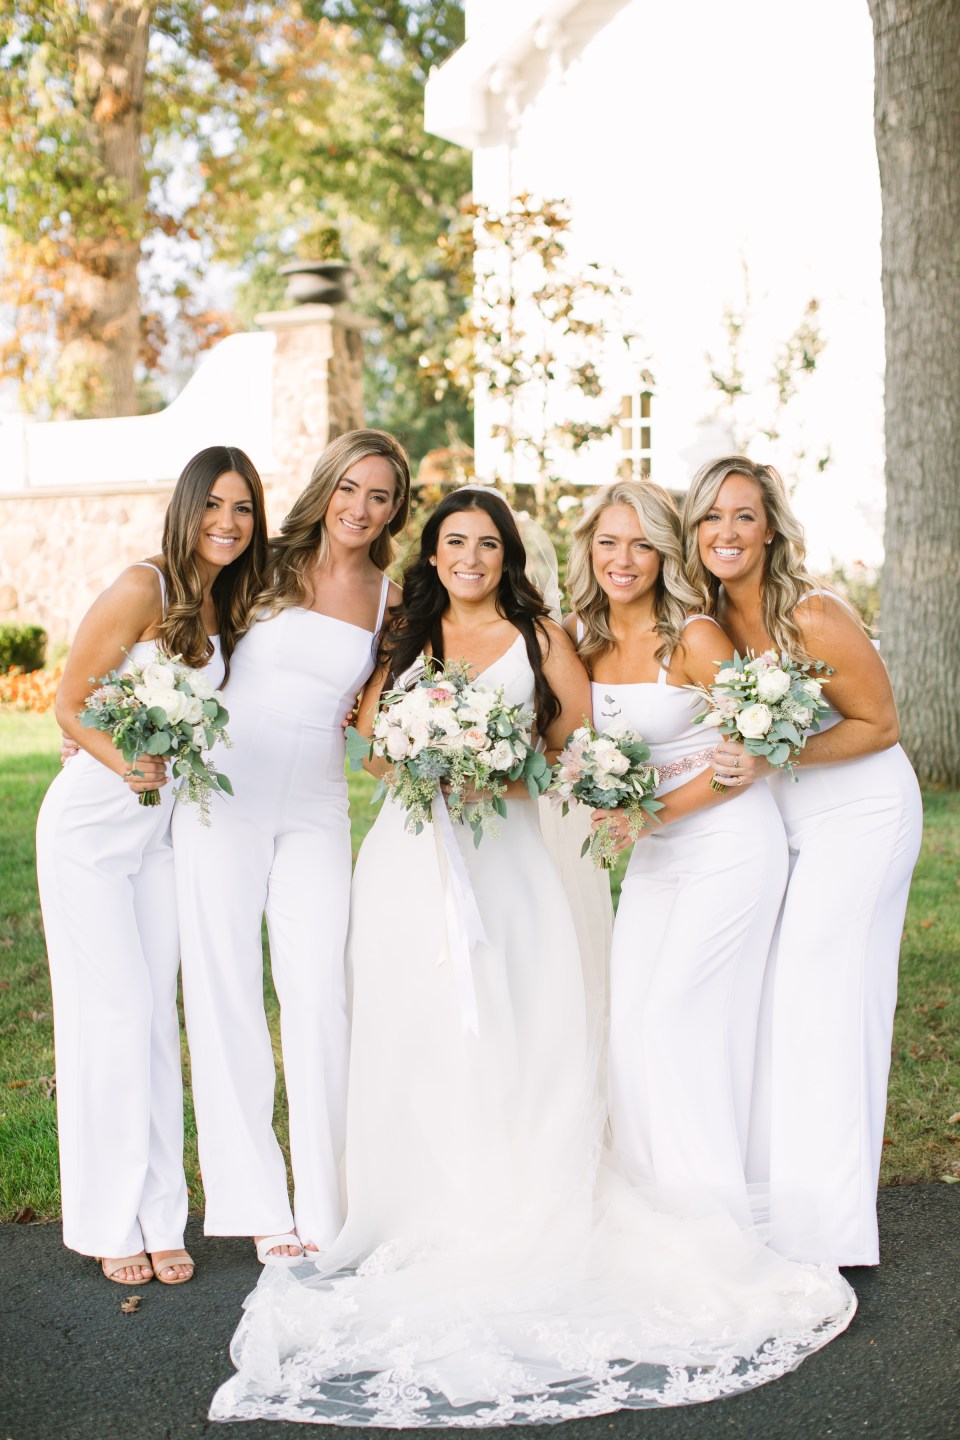 bridesmaid photos by Ashley Mac Photographs at Ryland Inn